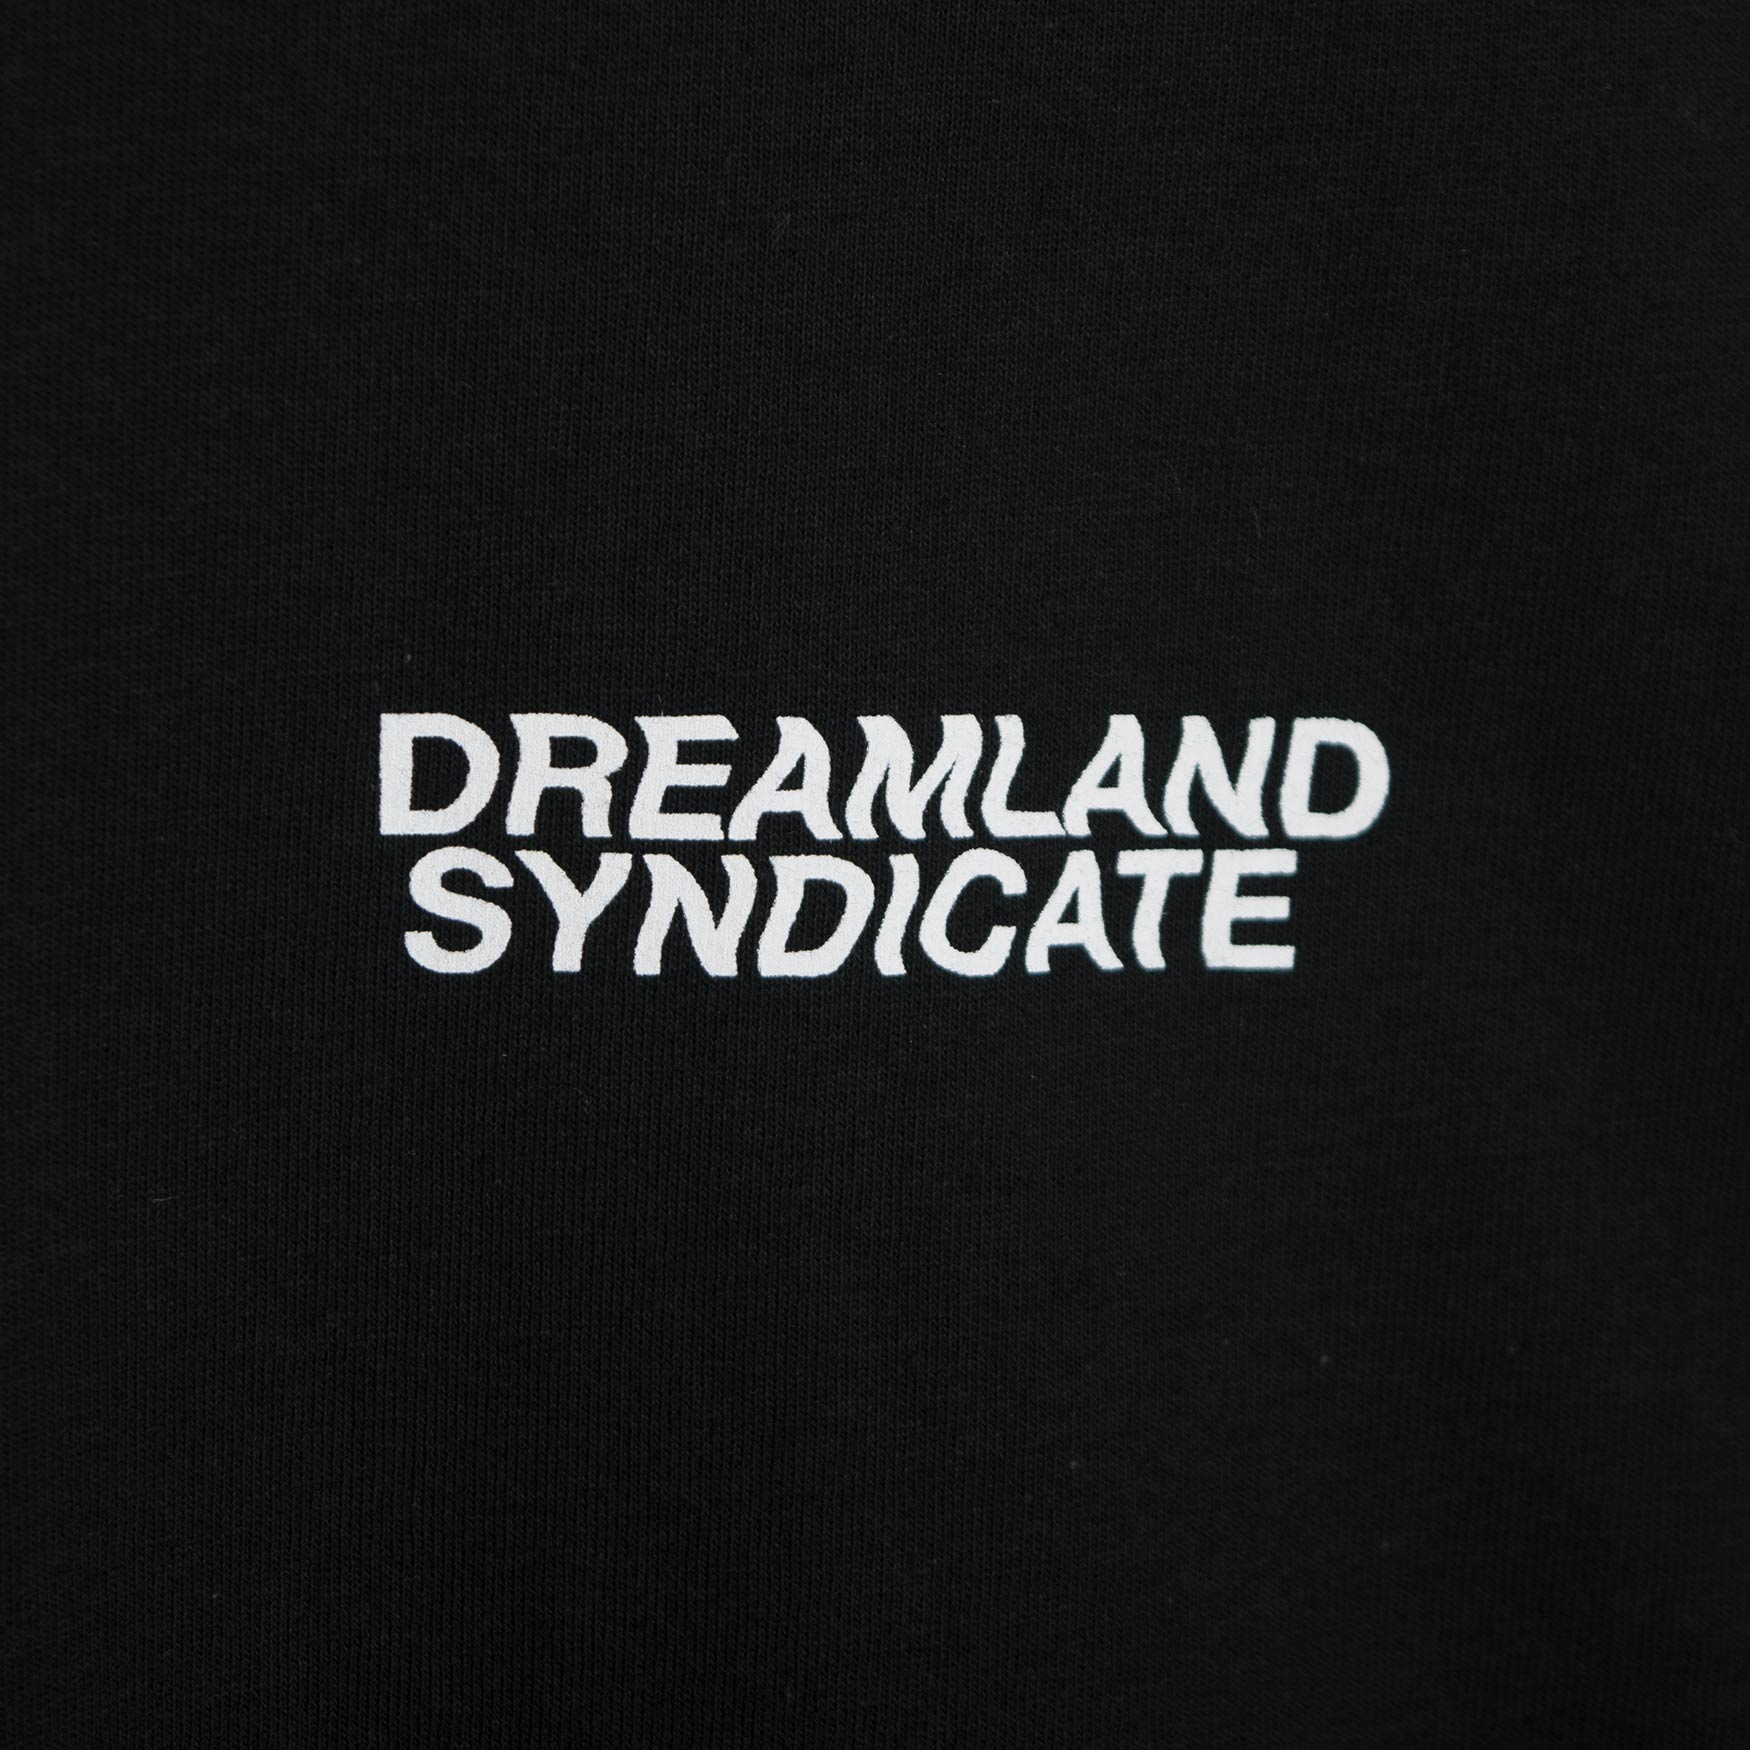 Dreamland Syndicate Contrast Core Logo Long Sleeve T-Shirt - Black T-Shirt - CARTOCON